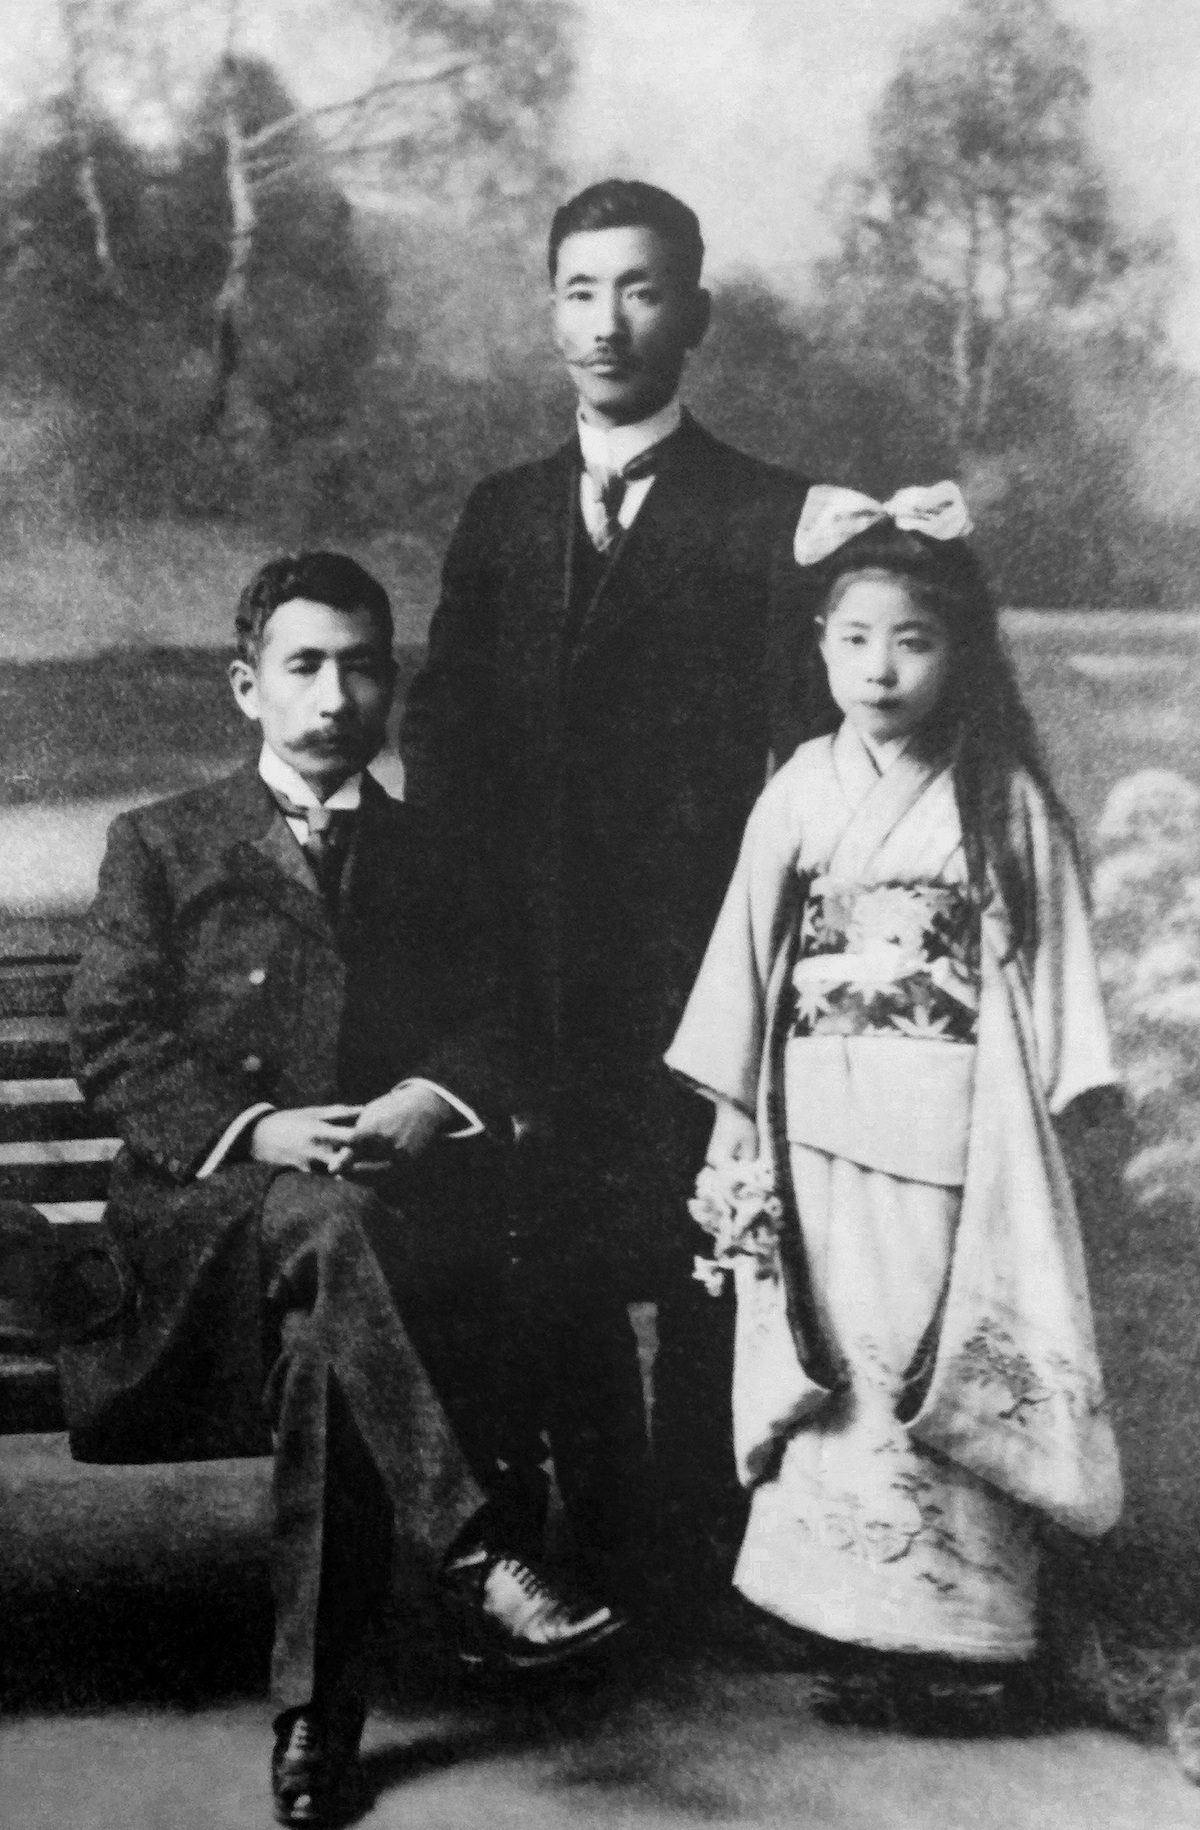 an analysis of soseki natsumes botchan and the meiji era Botchan (坊っちゃん) is a novel written by natsume sōseki in 1906 it is one of the most popular  major themes[edit] botchan's  botchan grows up in the rapidly modernizing meiji-era tokyo before moving to the more traditional matsuyama.